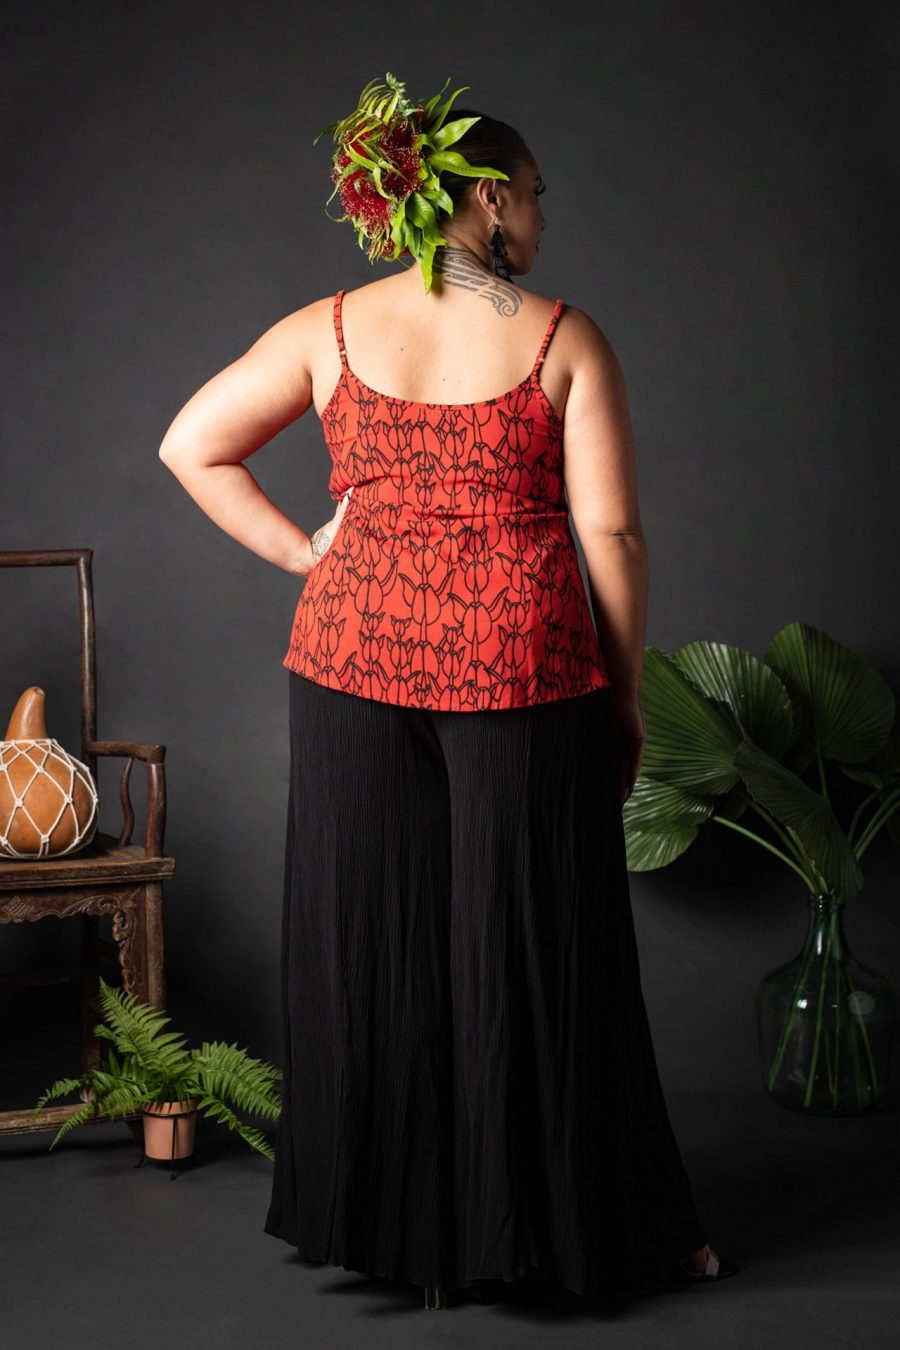 Female model wearing a Manaola Top 6 in a Kapualiko pattern and Fiery Red and Black Color - Back View